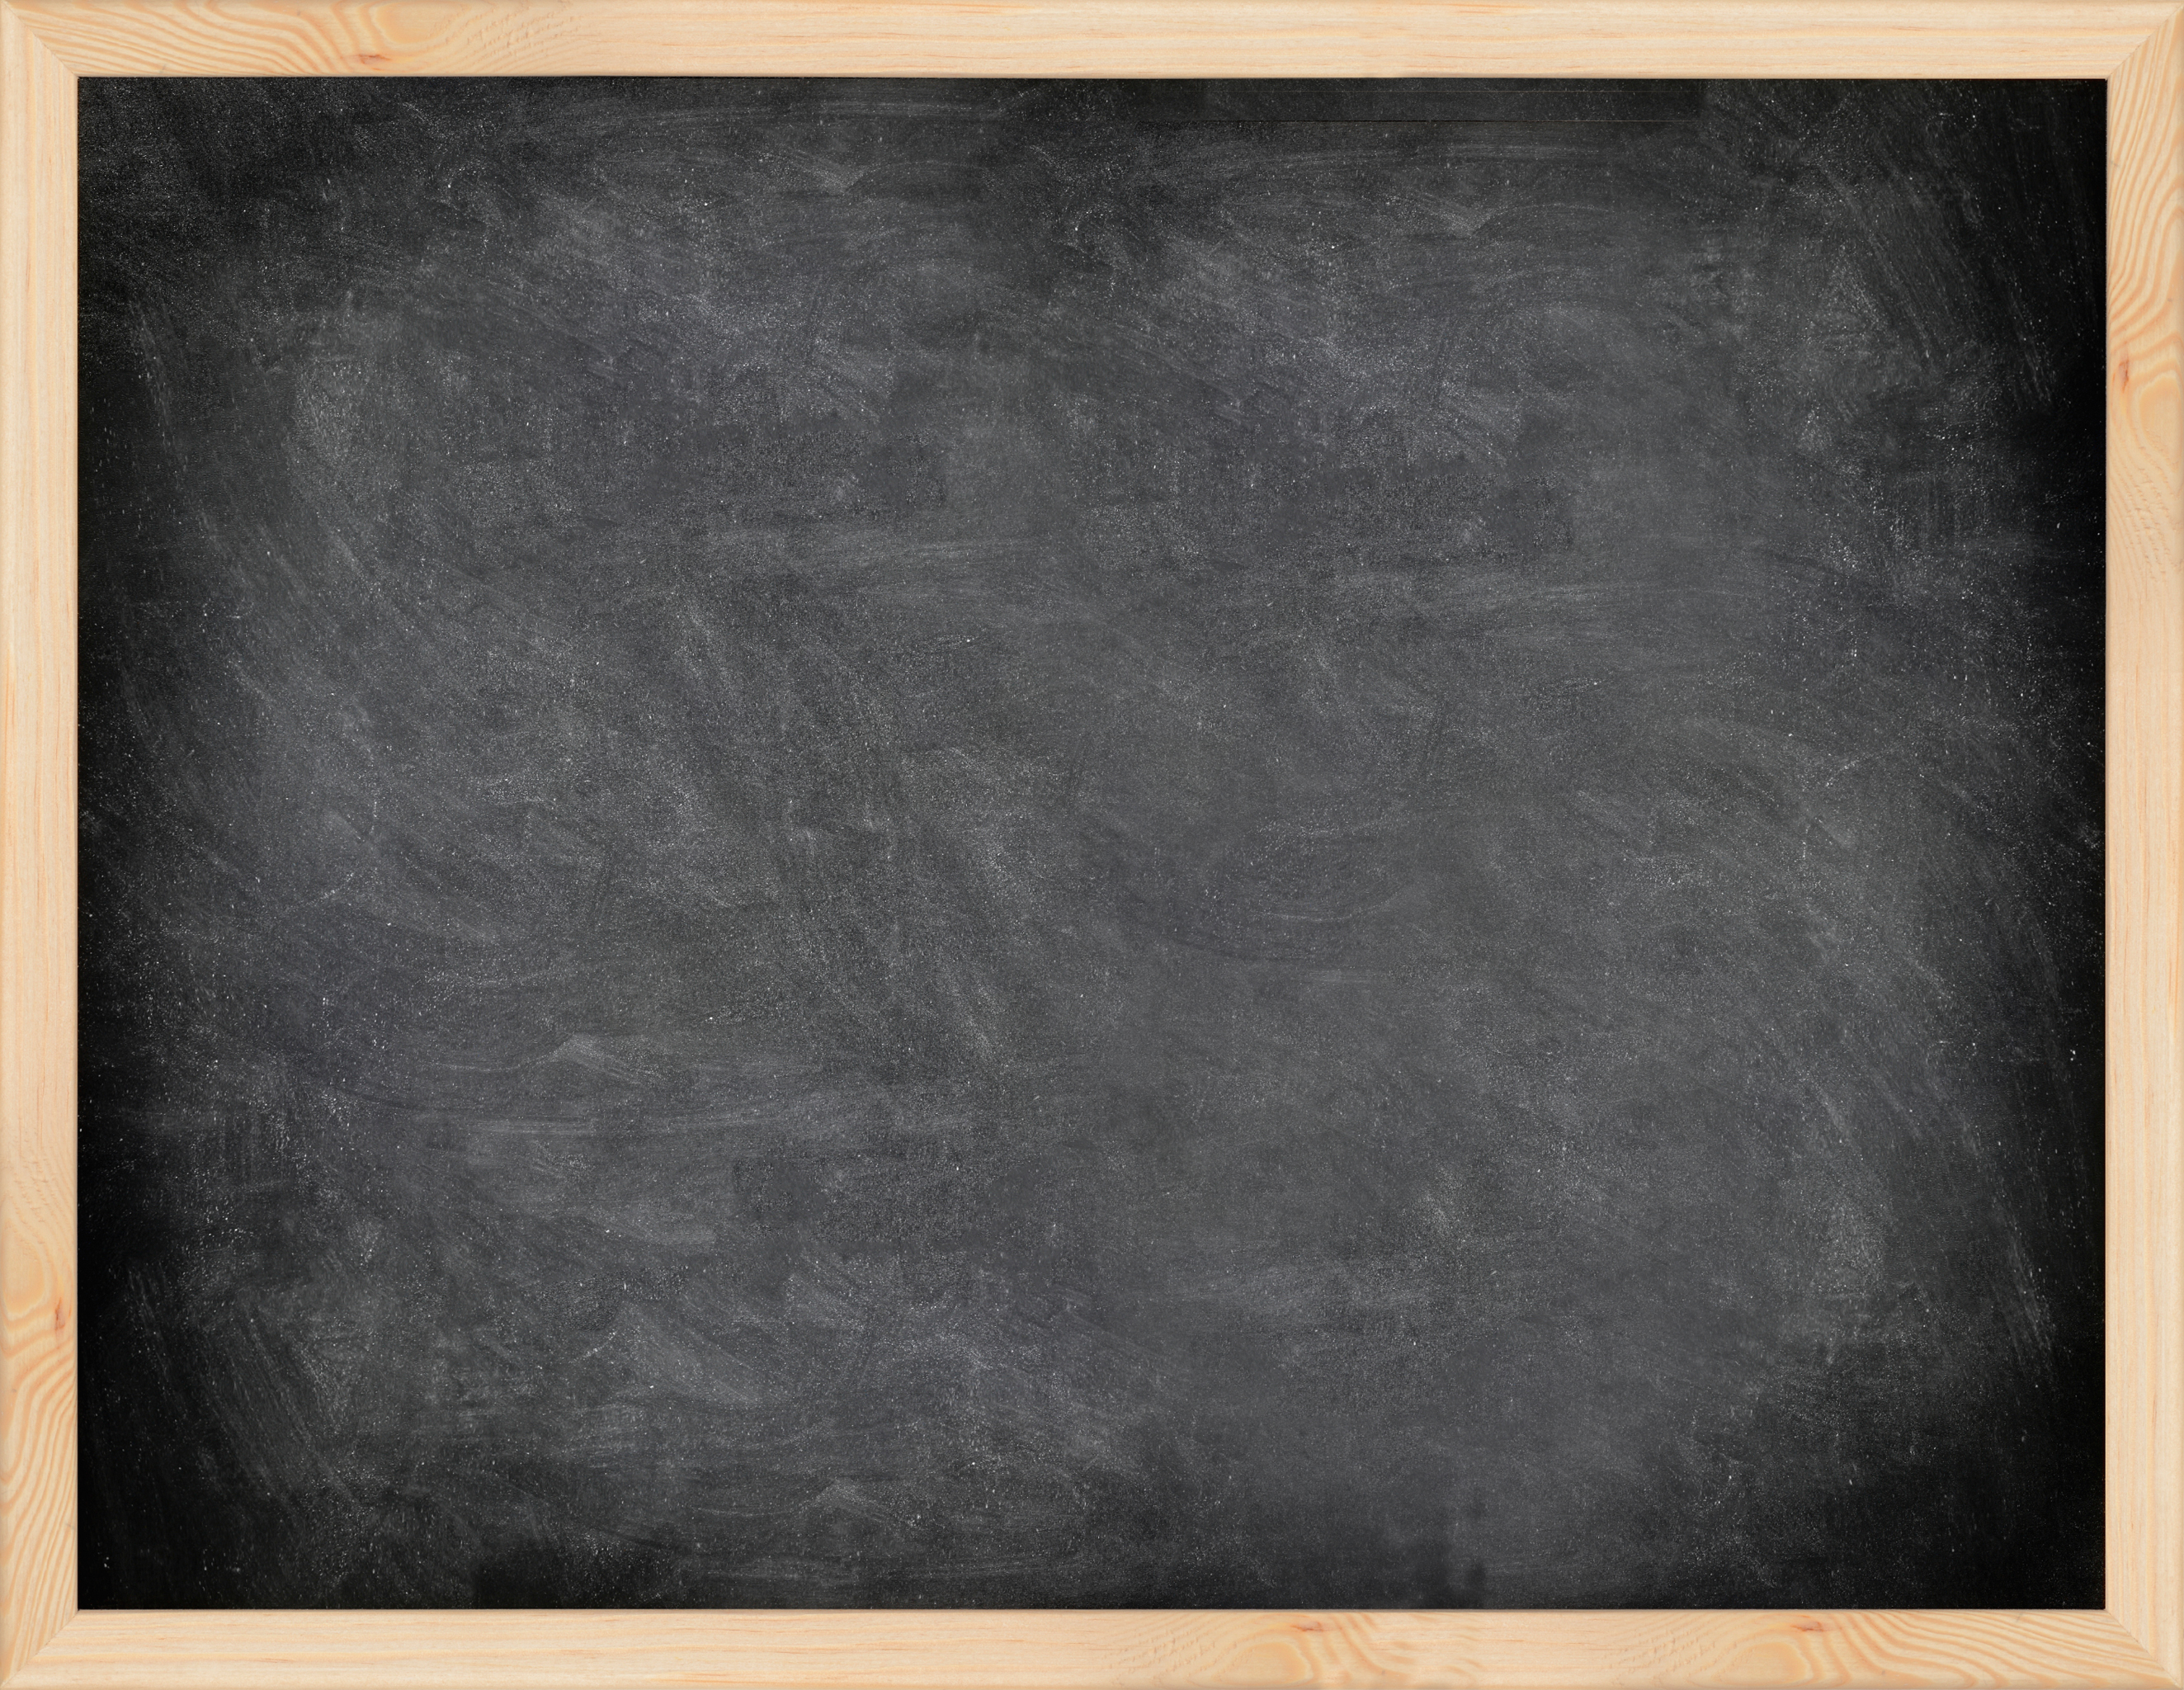 Free Chalk Board, Download Free Clip Art, Free Clip Art on Clipart.